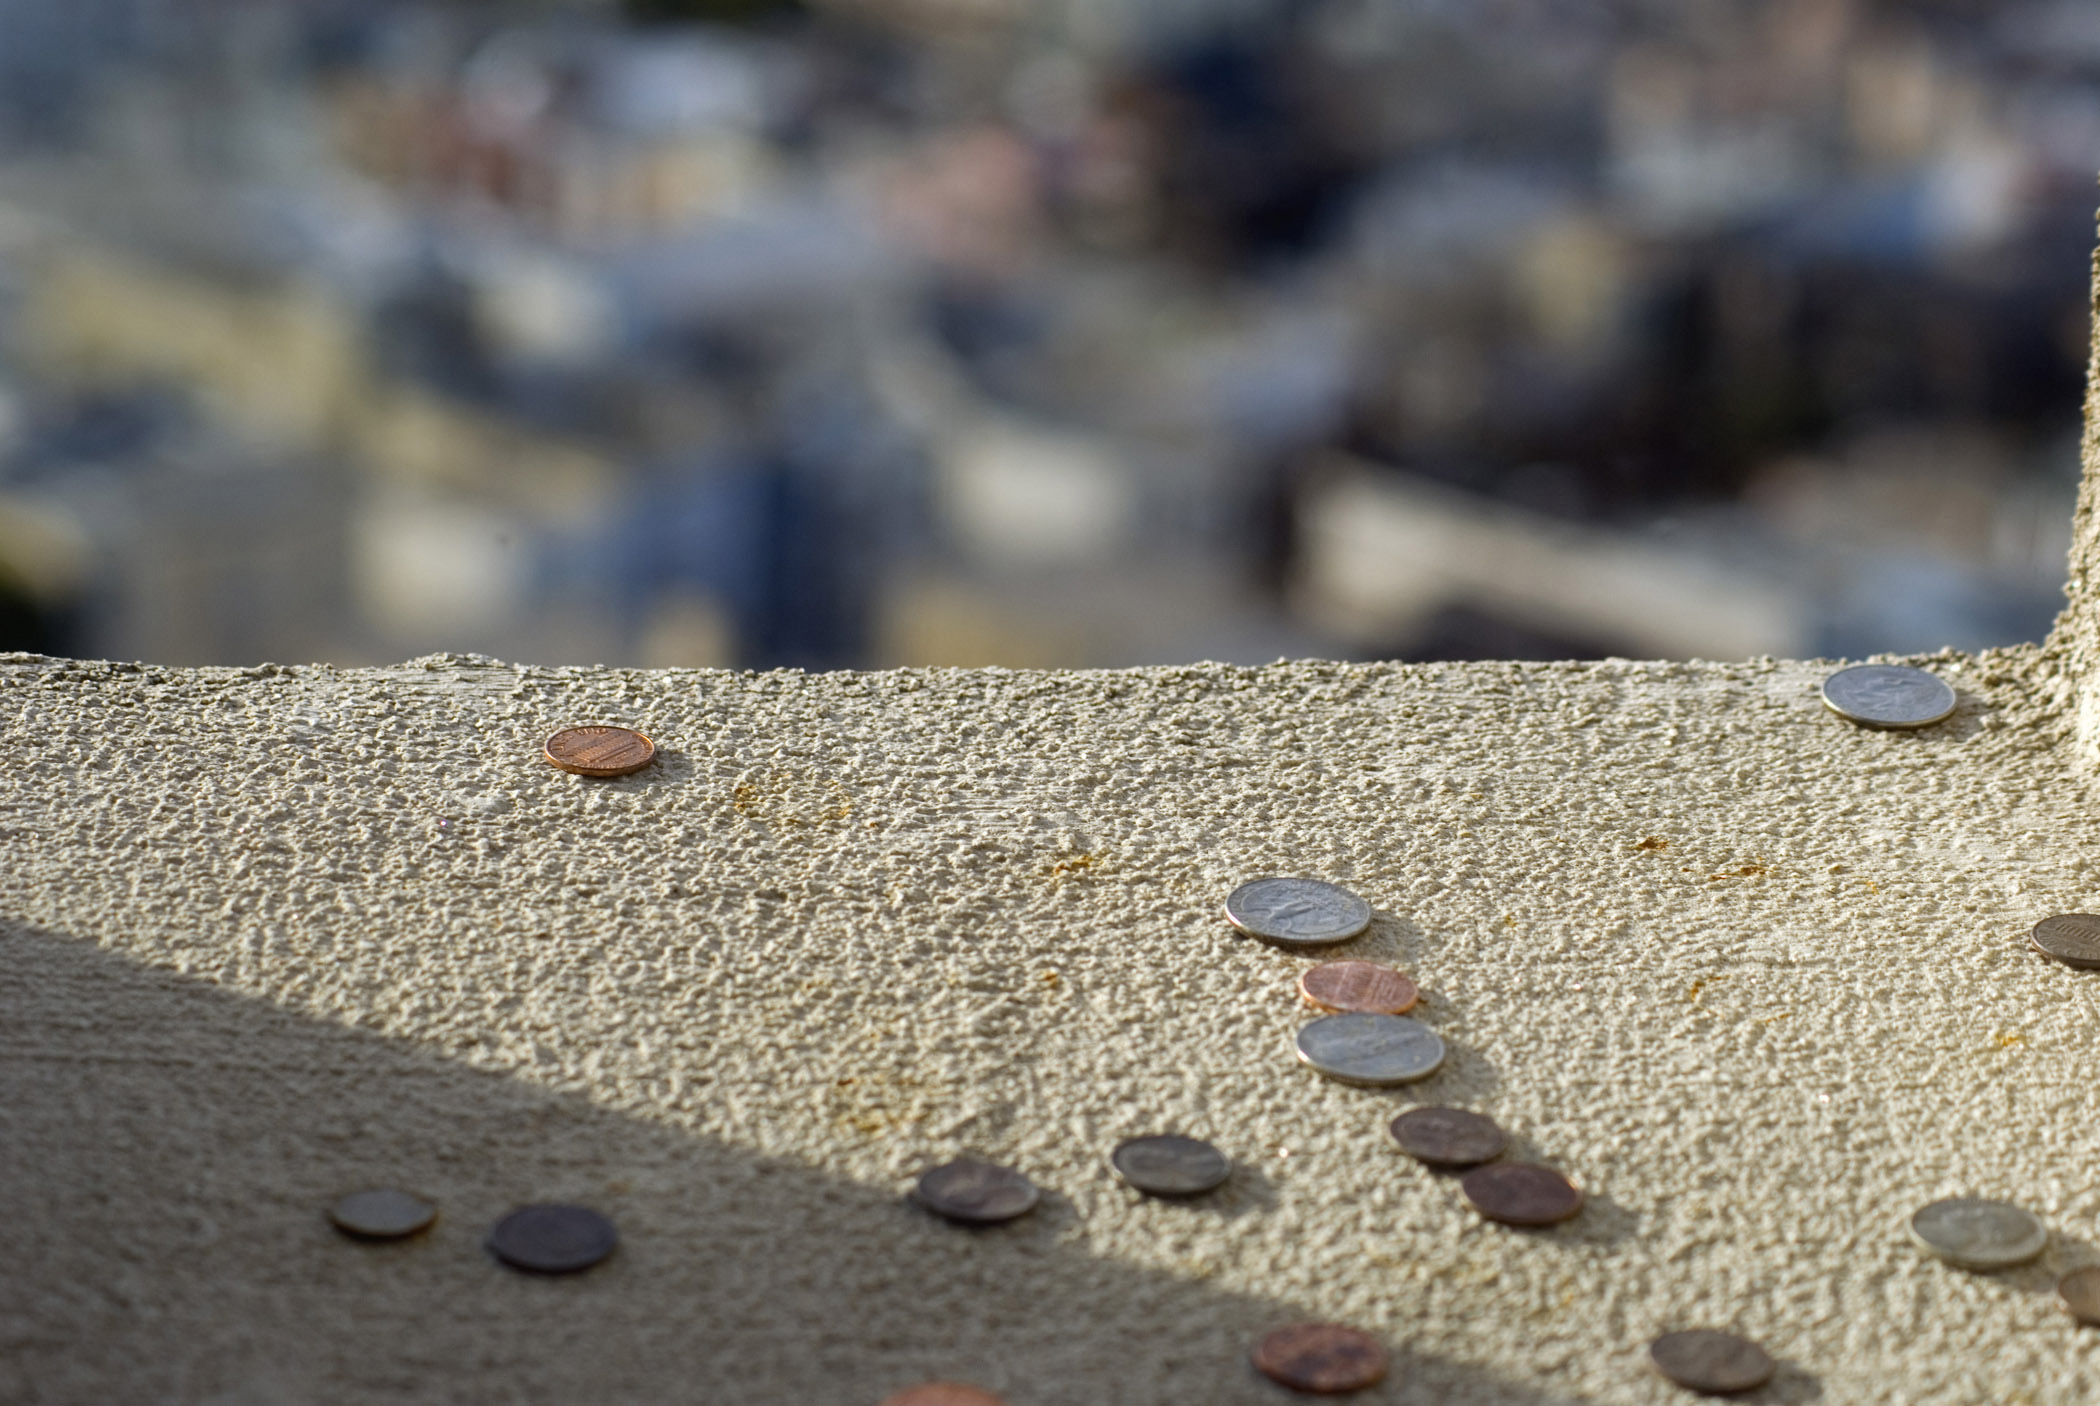 Close up Assorted Coins at Coit Concrete Tower Window in San Francisco.